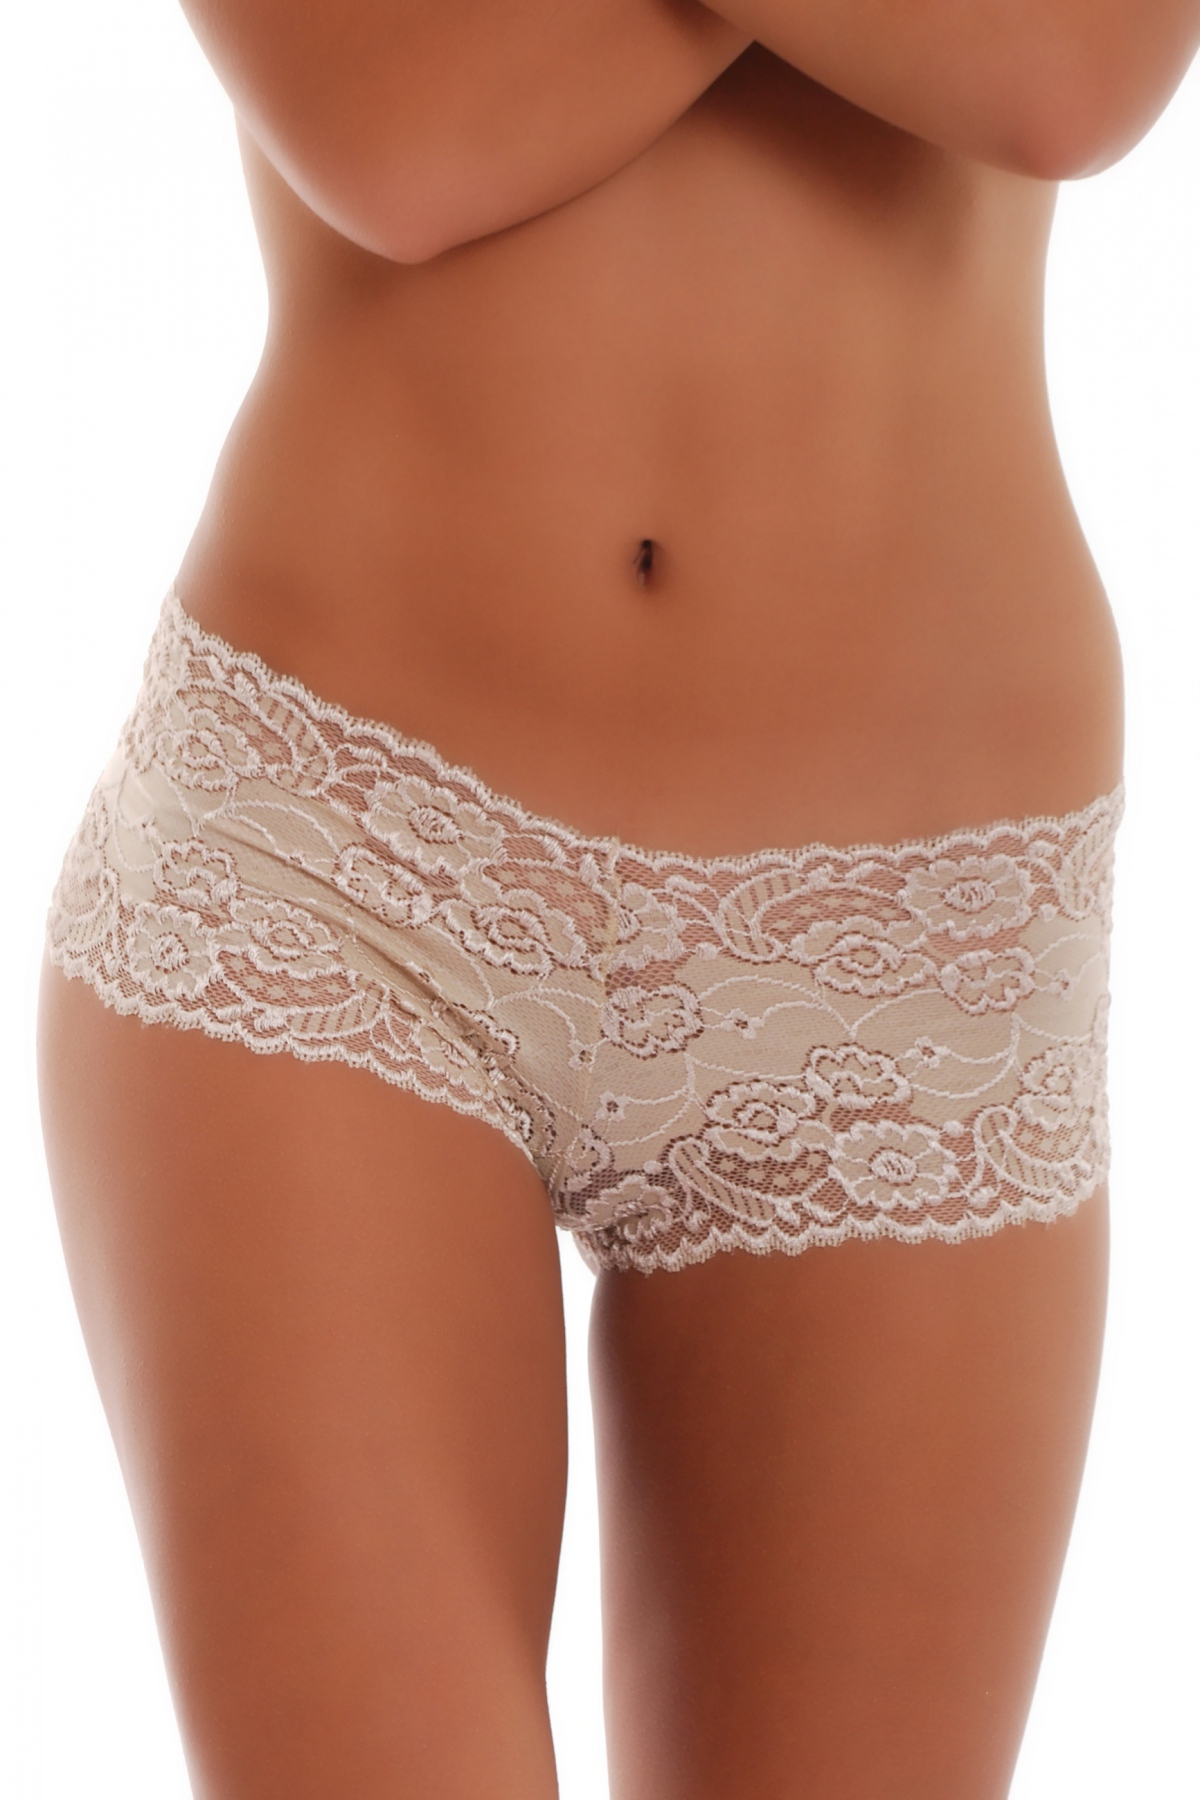 Whether you're looking for everyday or a special night, LACE has the best to match your needs. Pick from crotchless, lace, fishnet, boyshorts and more!